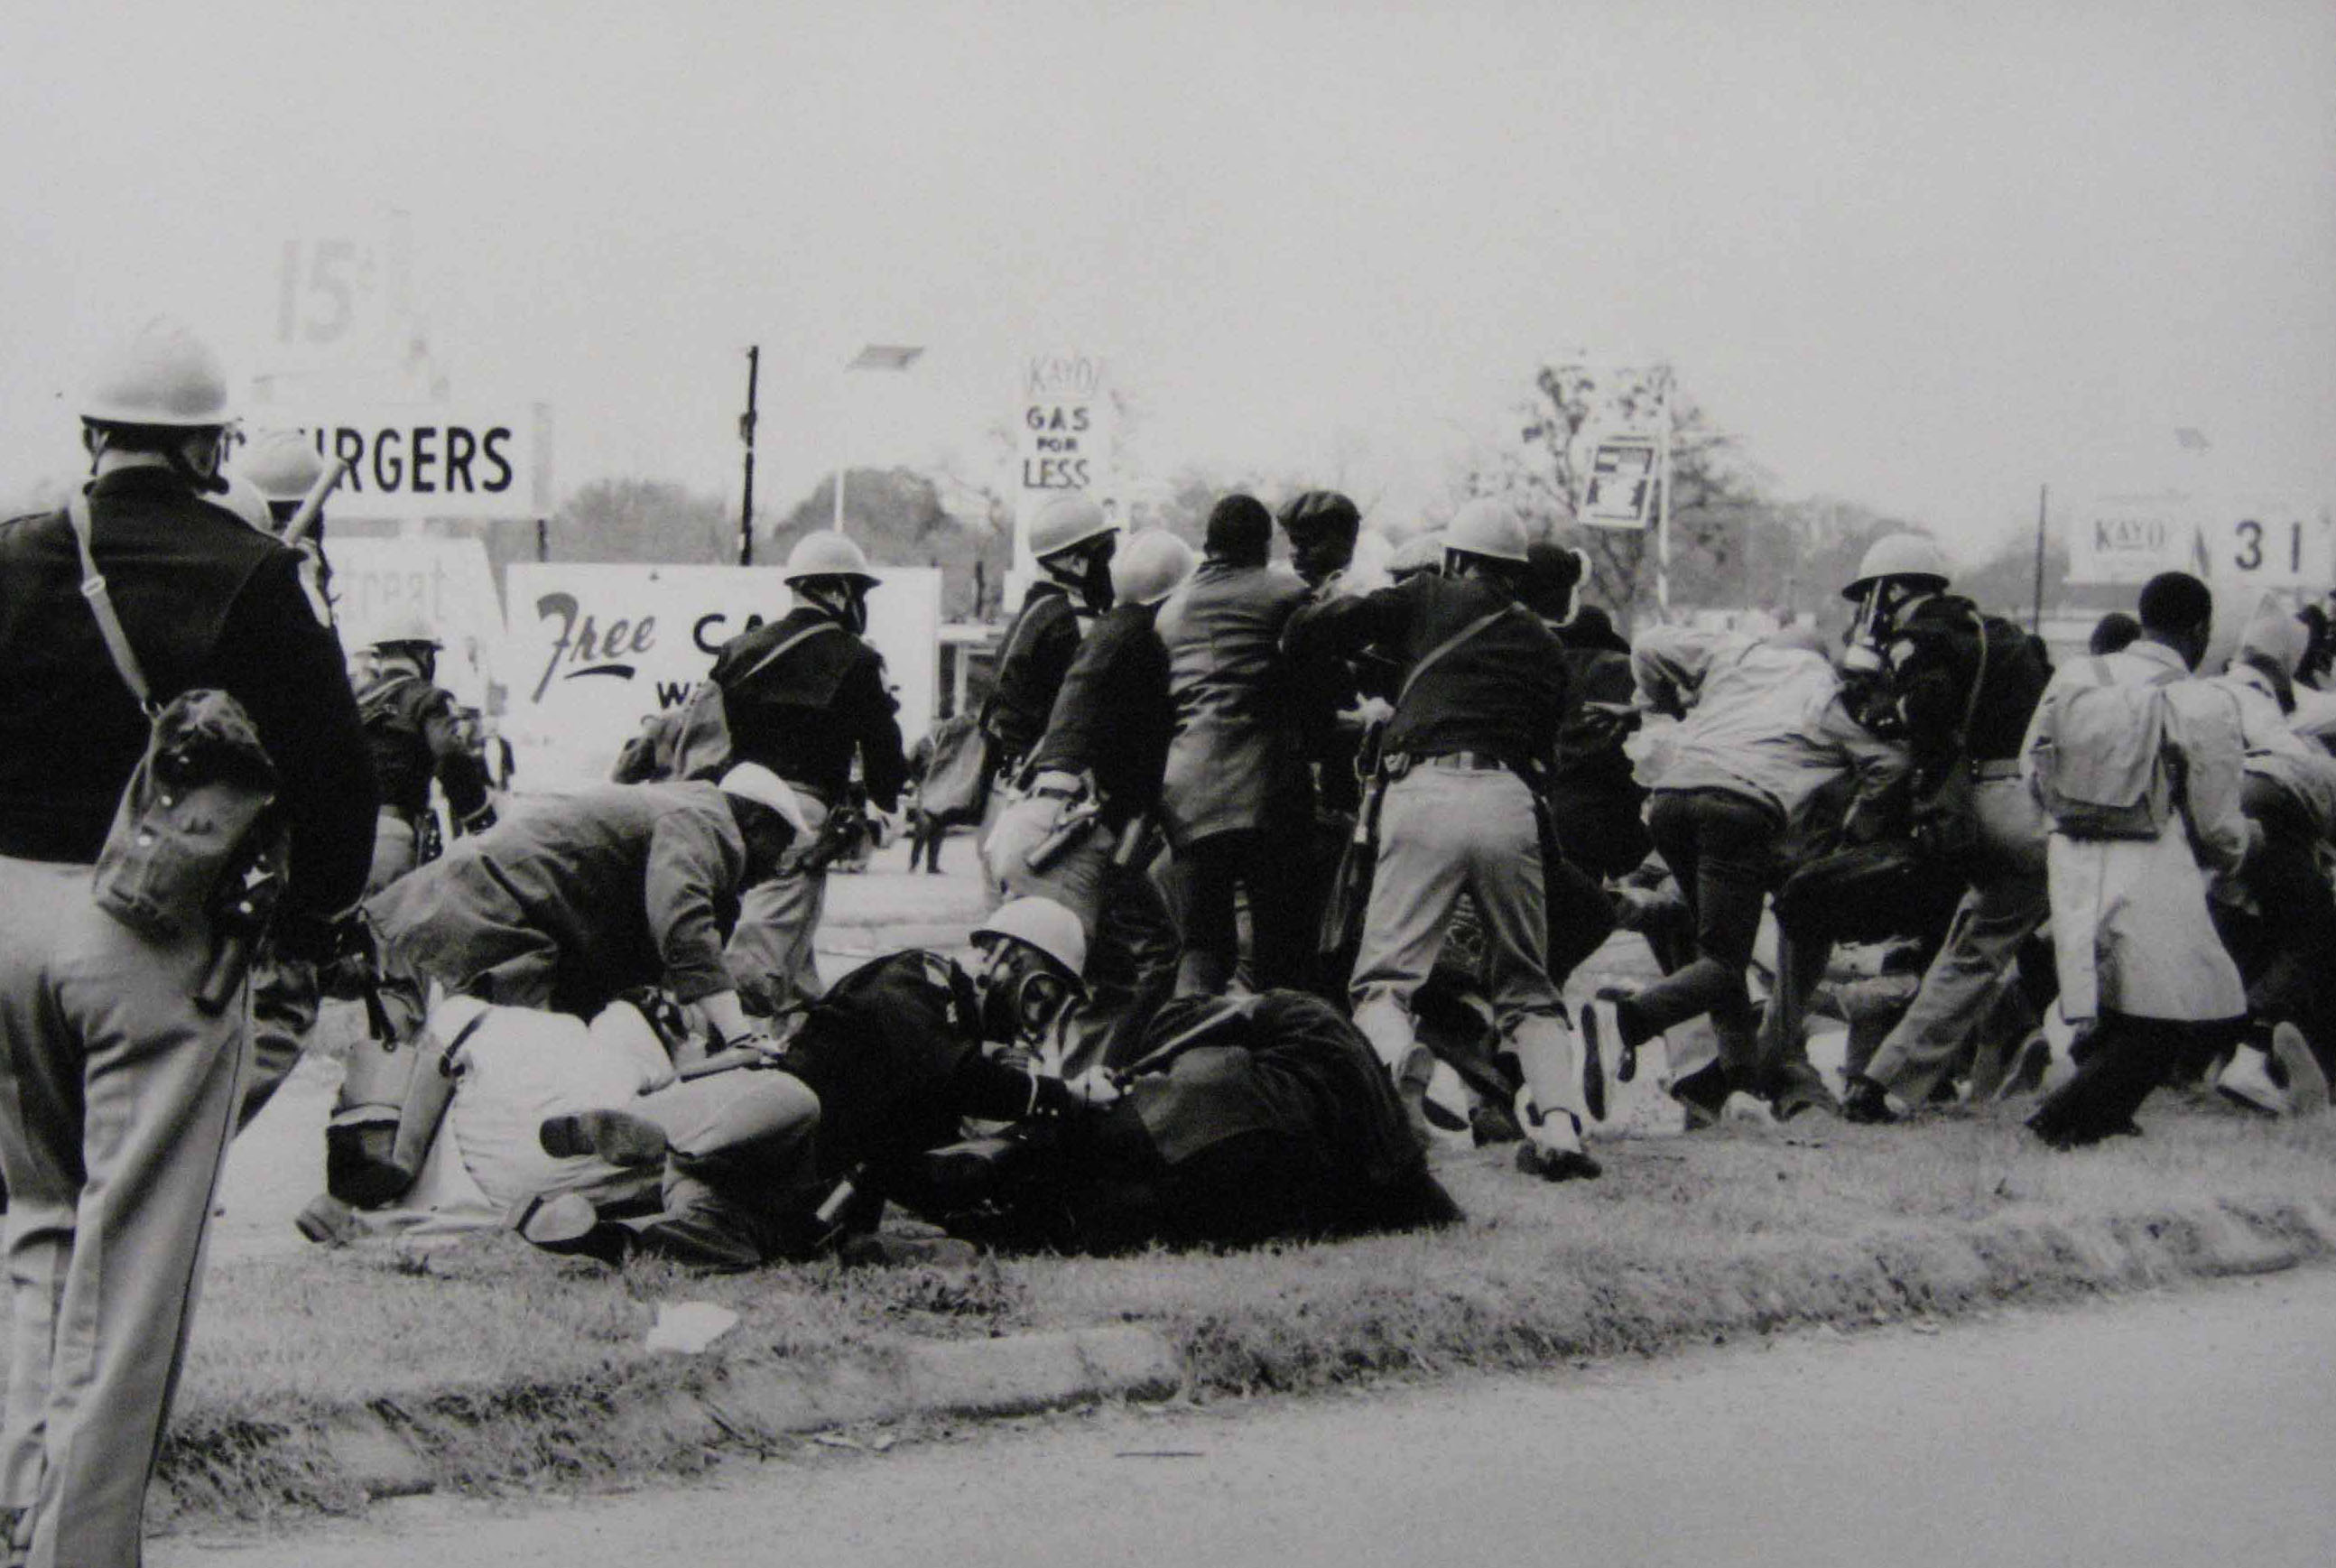 hampton-photographs-selma-attack2-20071115.jpg